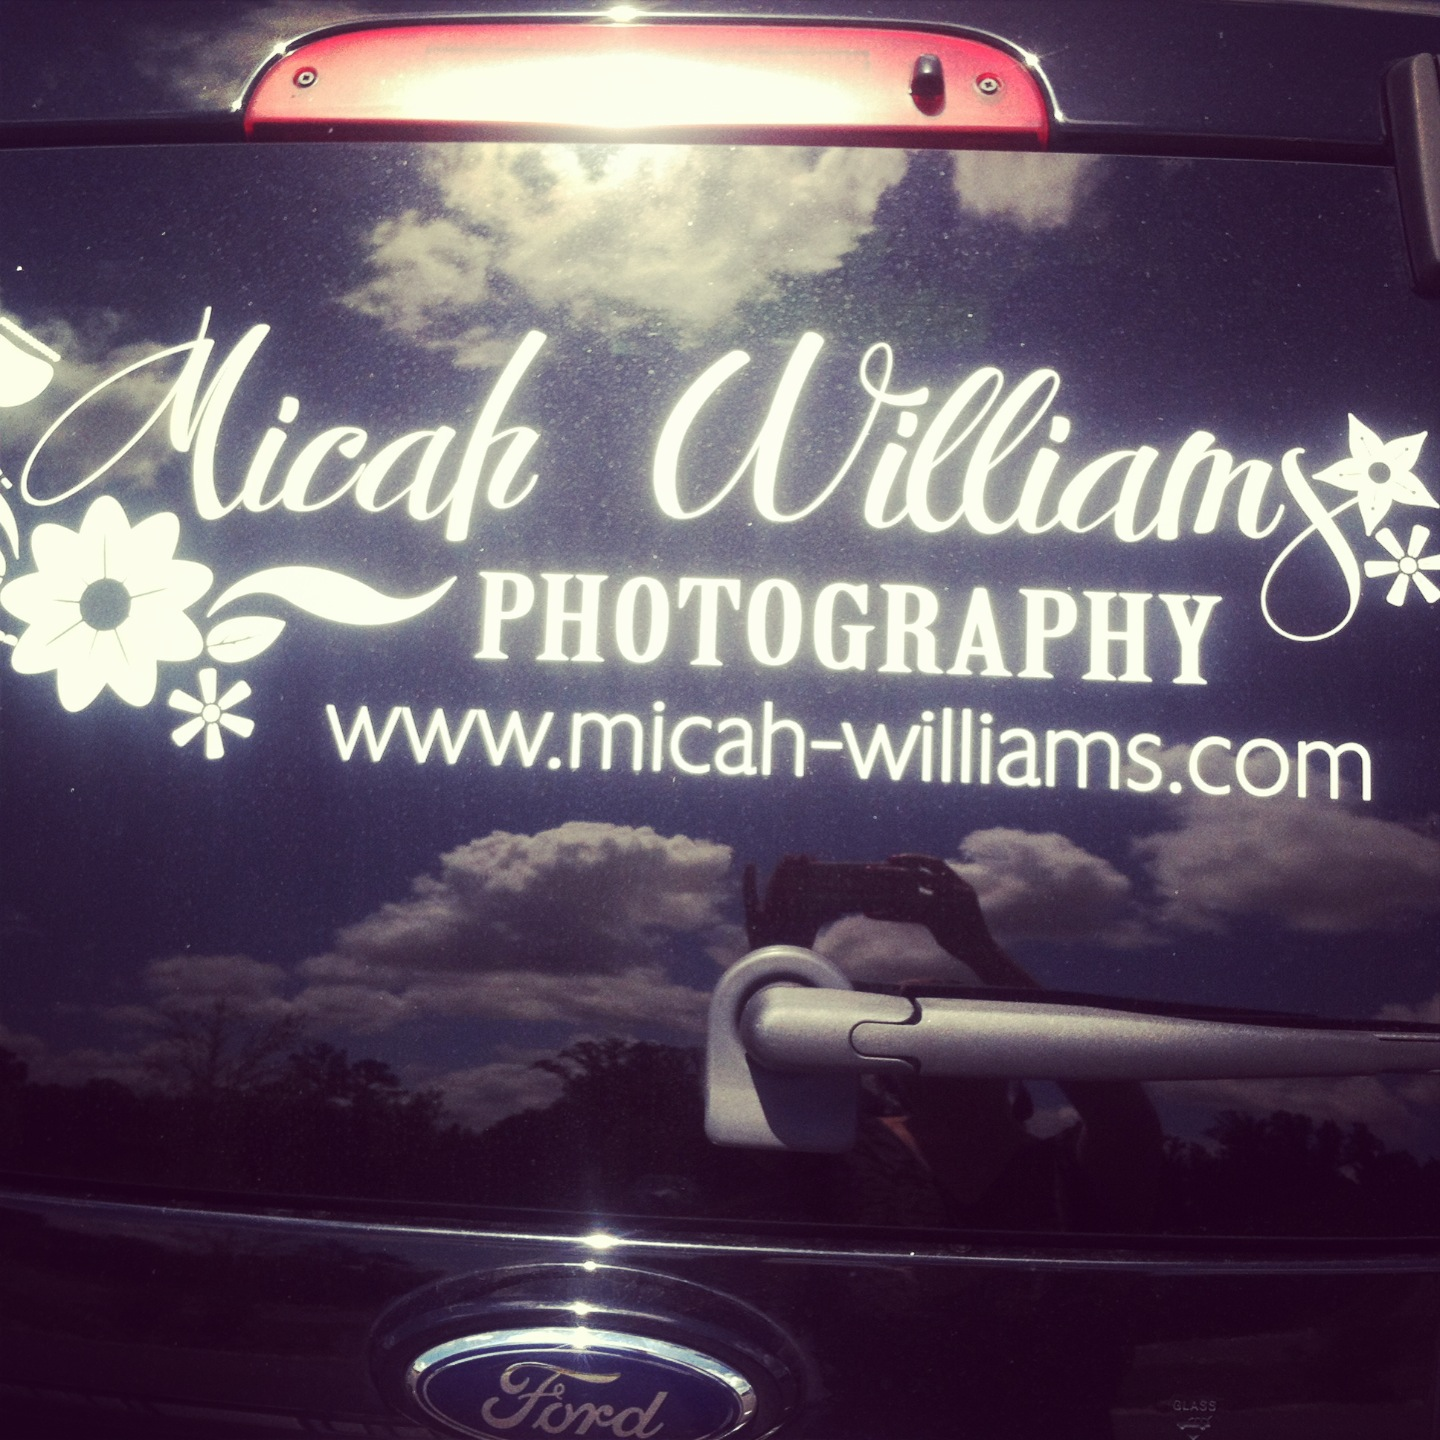 Micah Williams logo